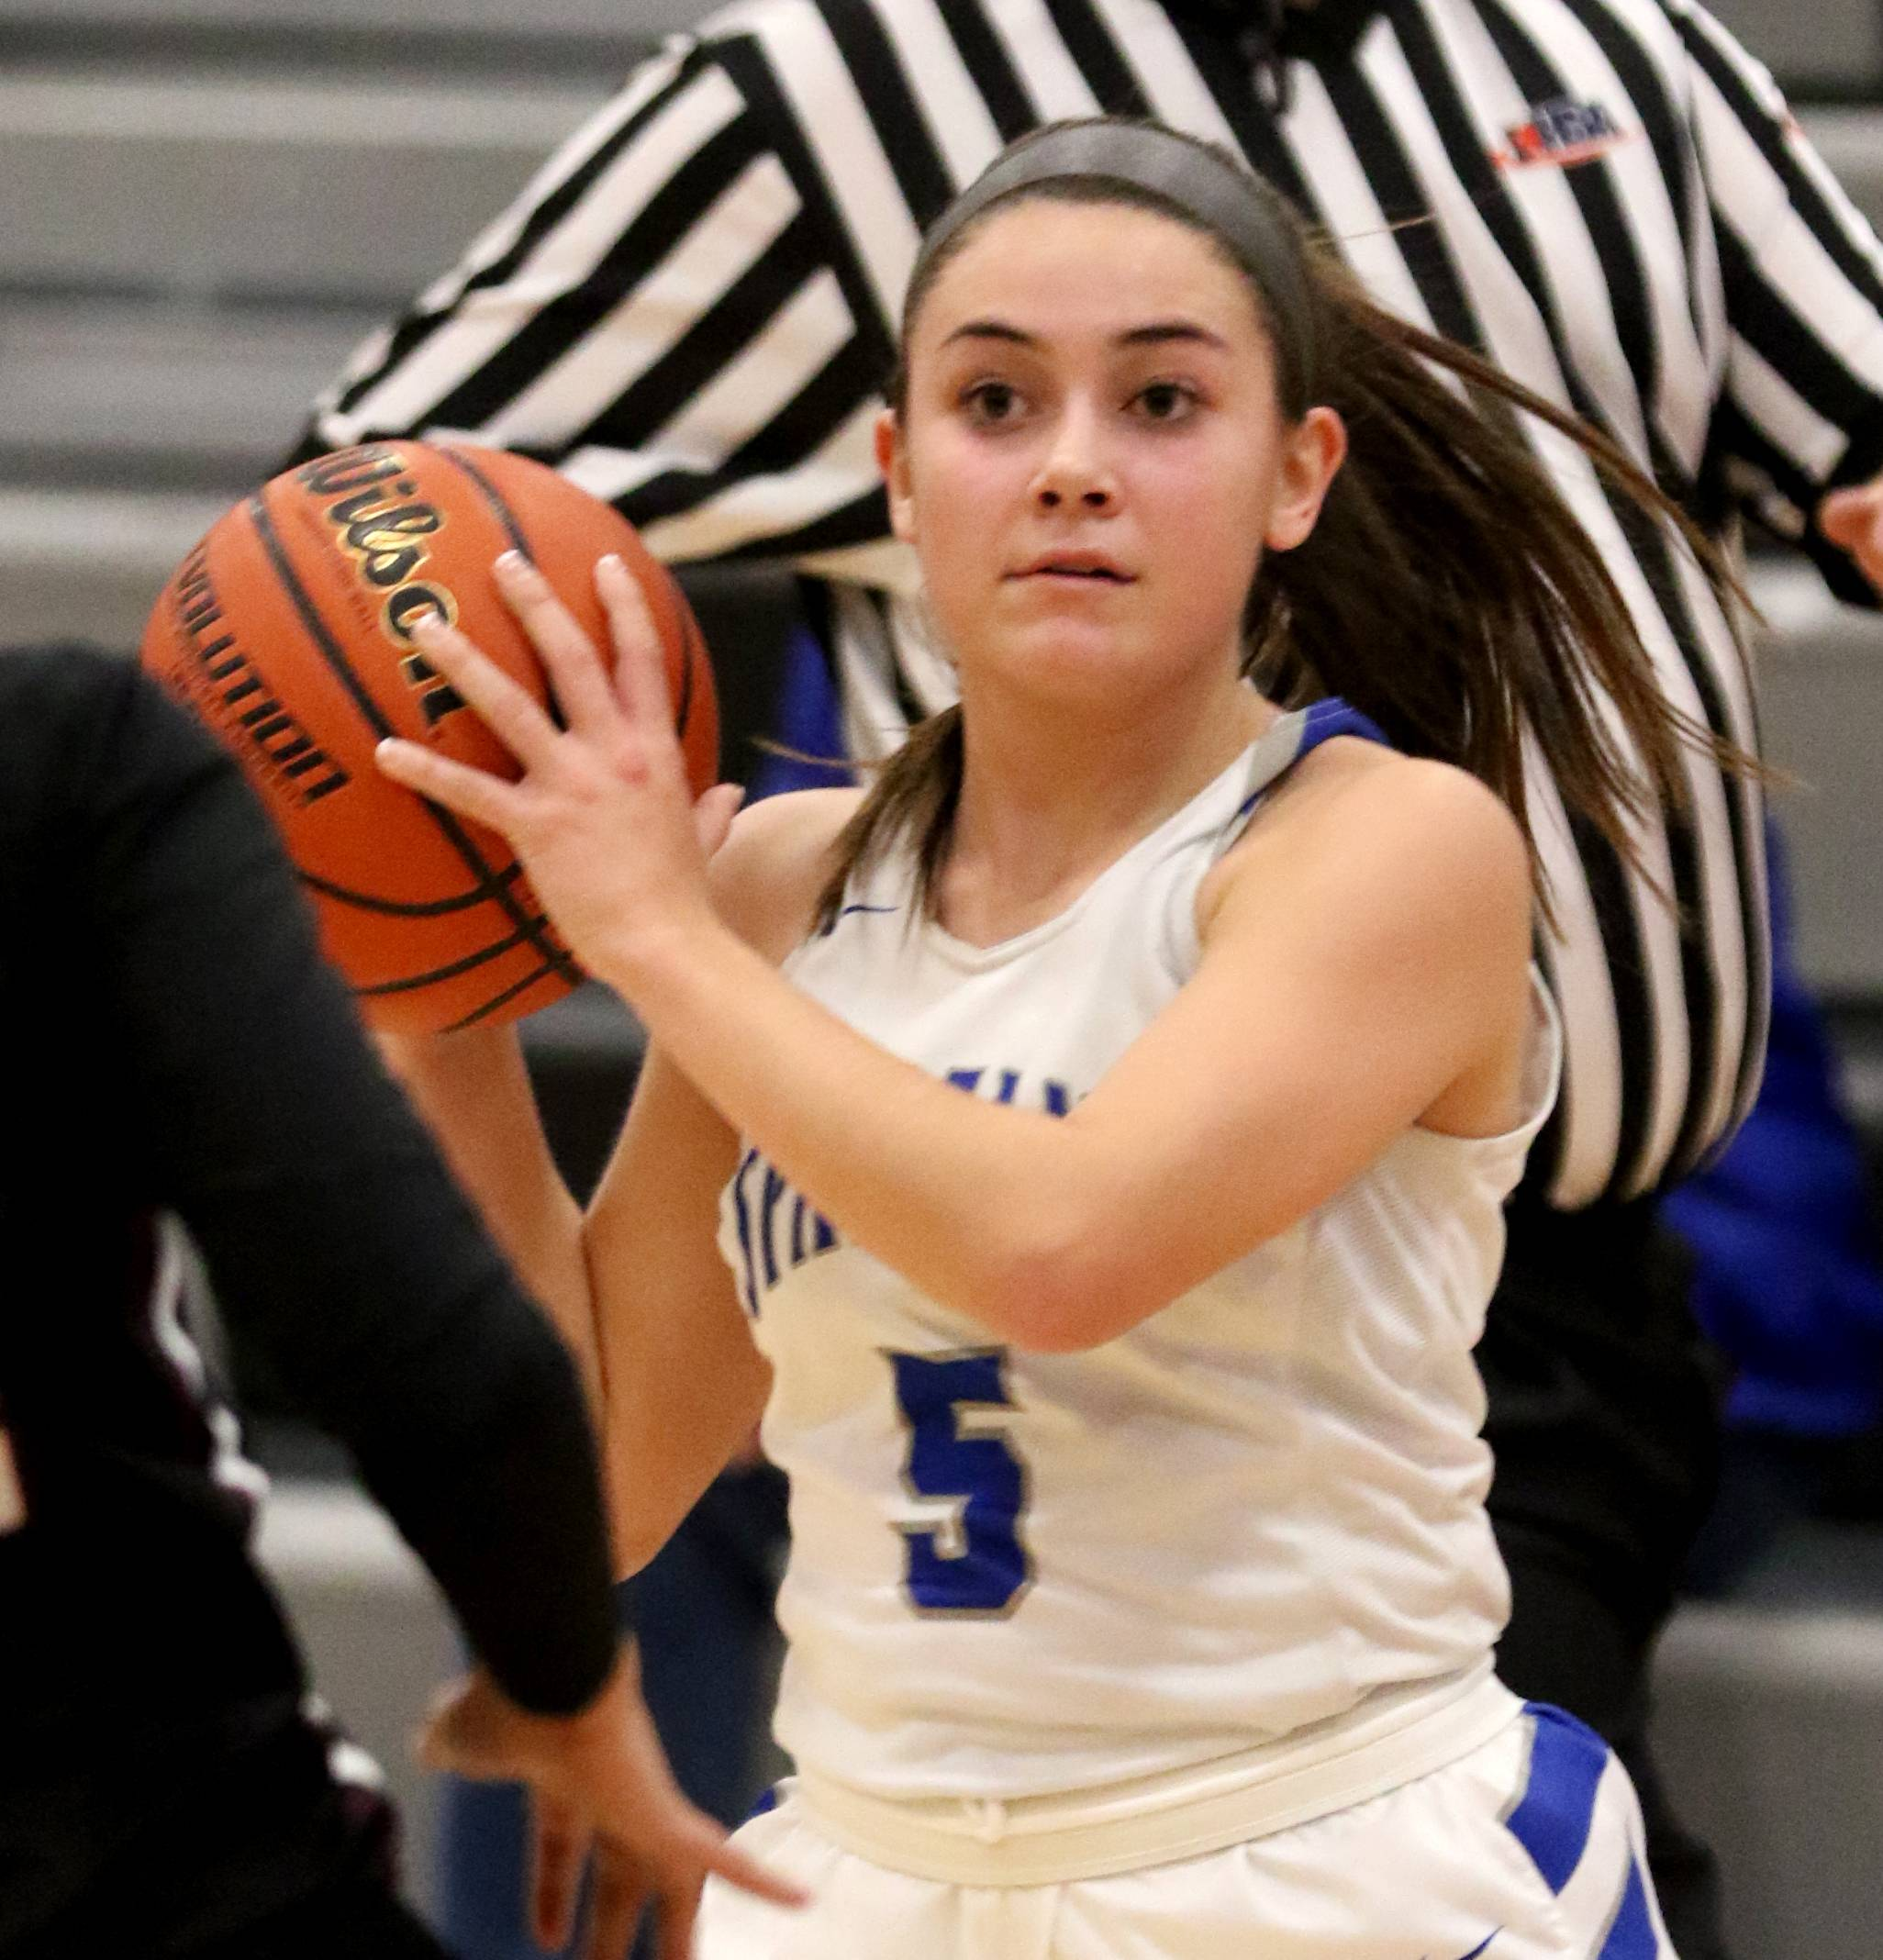 St. Francis' Katelin Chaparro looks for an option against Wheaton Academy during regional girls varsity basketball at Kaneland High School Monday night.